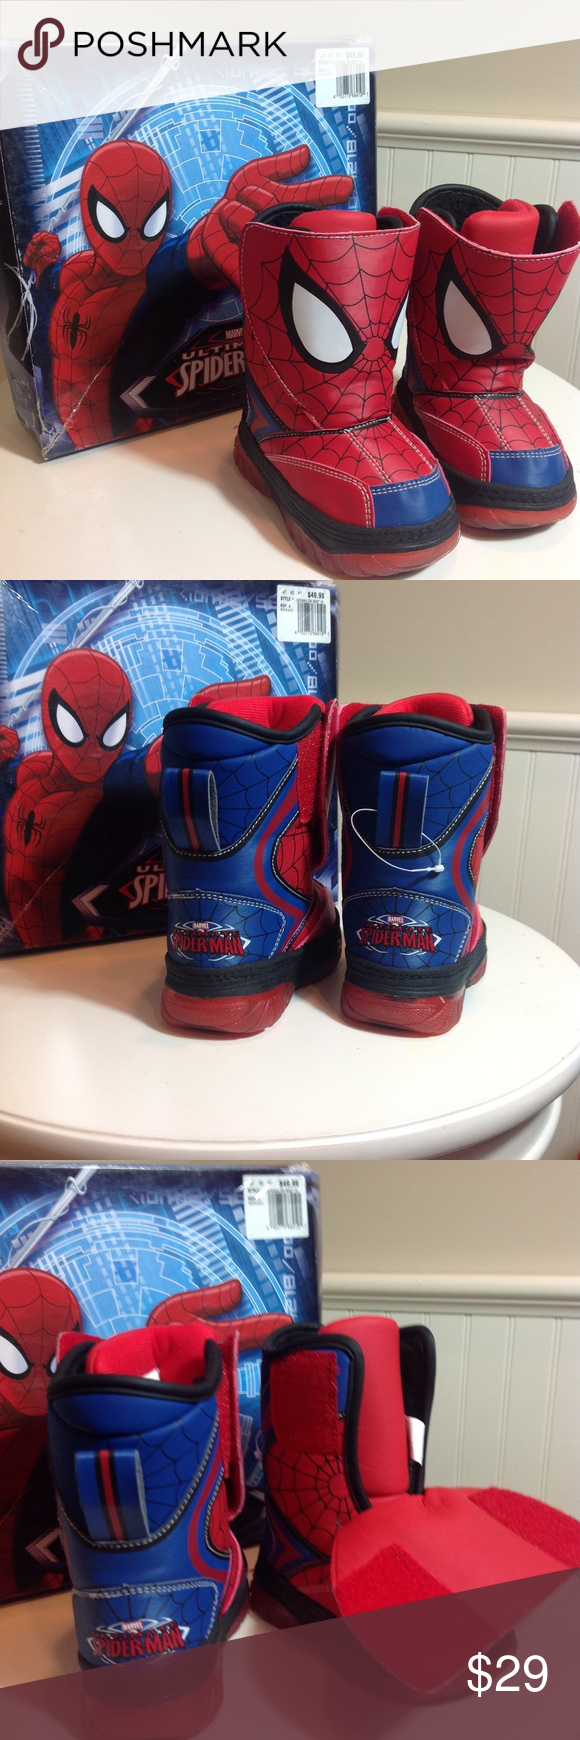 27649f3d17ce ... 🎁NWT Kids Spider-Man Light Up Boots! 5M Brand New with box!